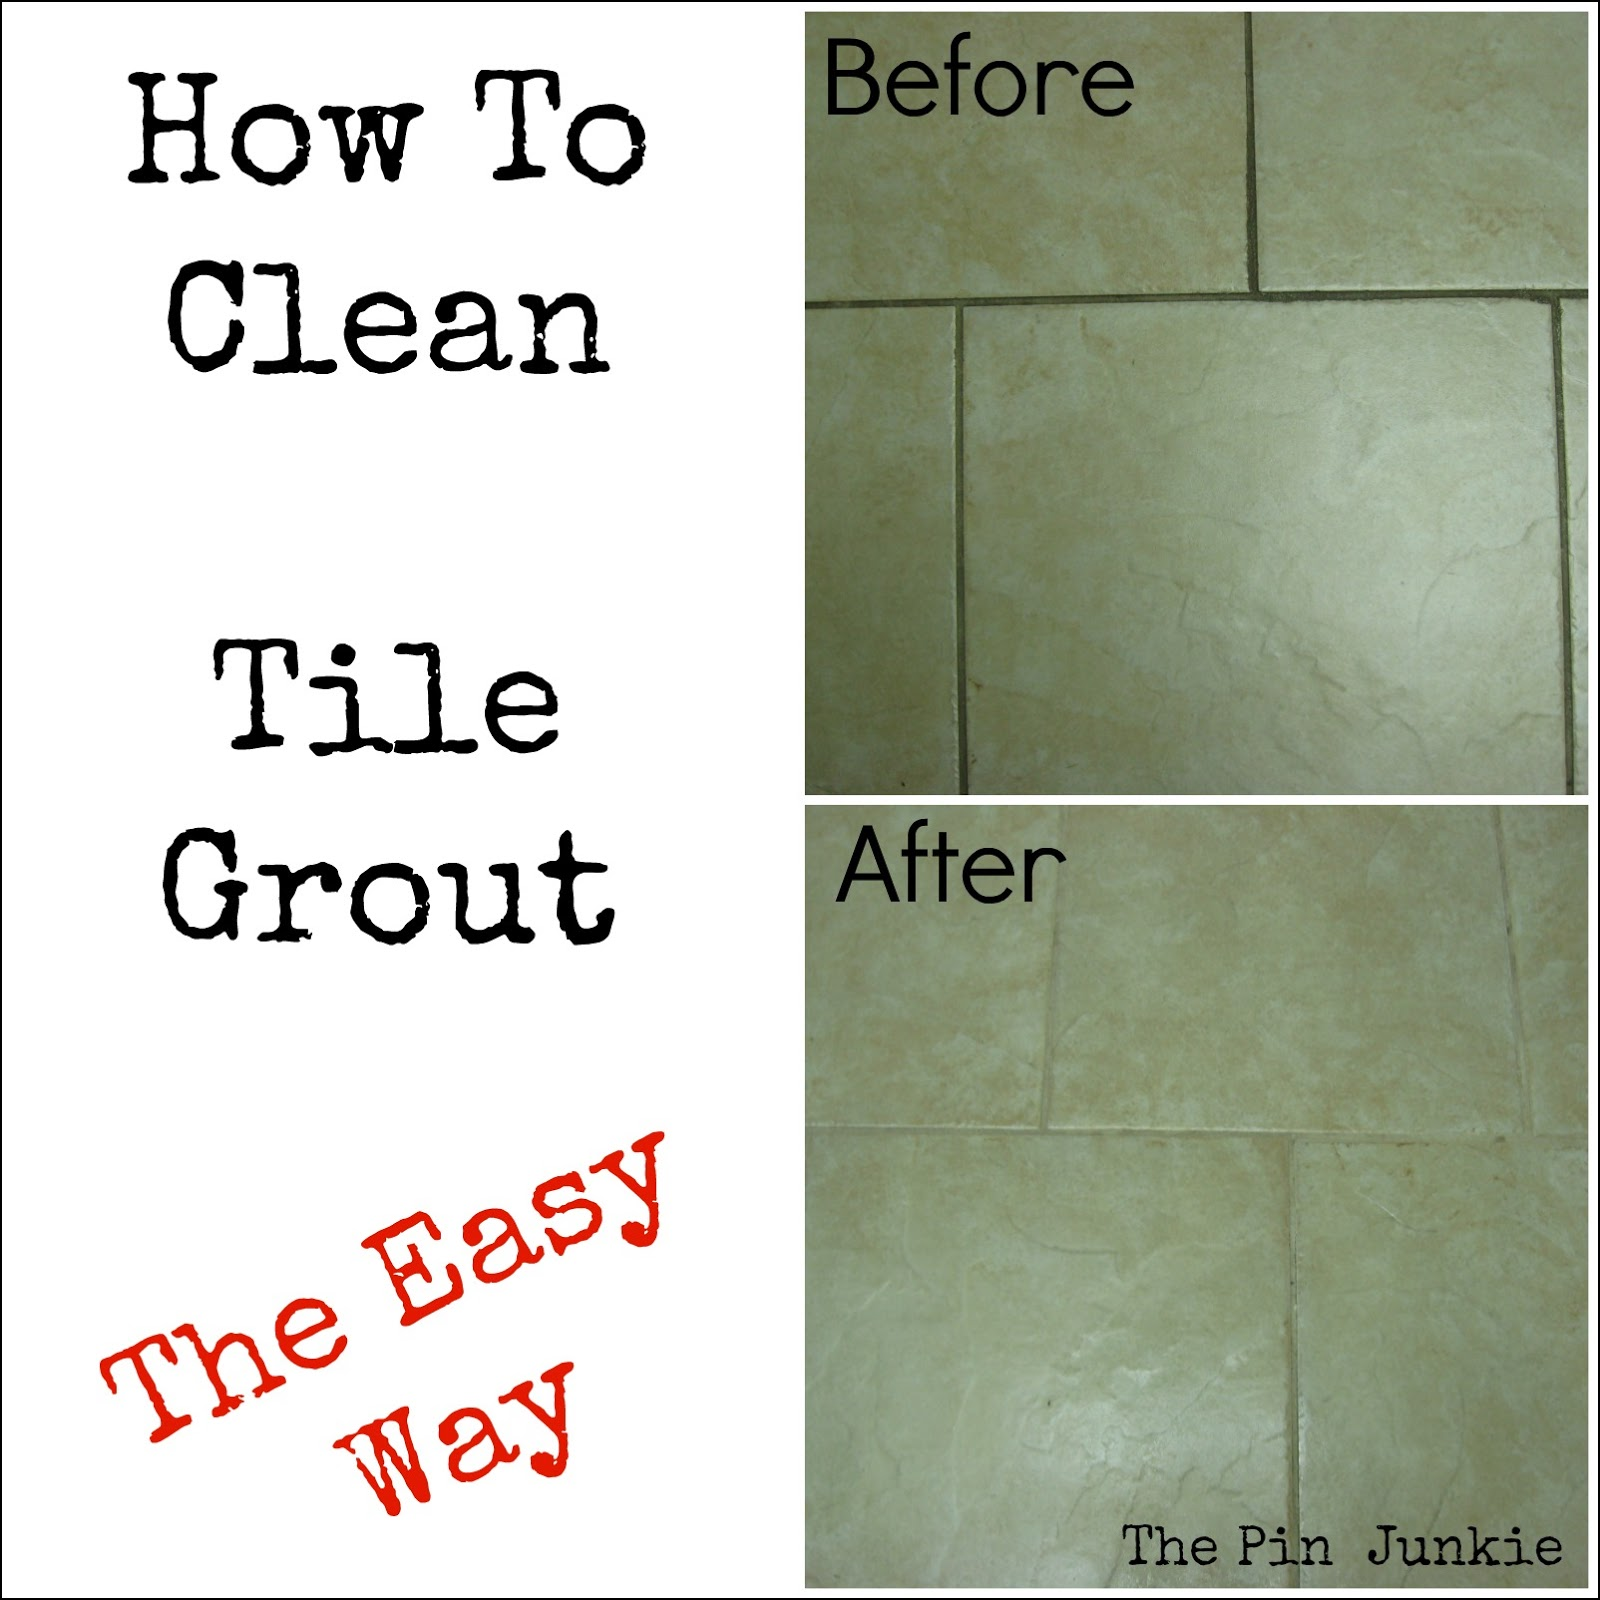 How To Clean Bathroom Tile: The Pin Junkie: Blog Updates